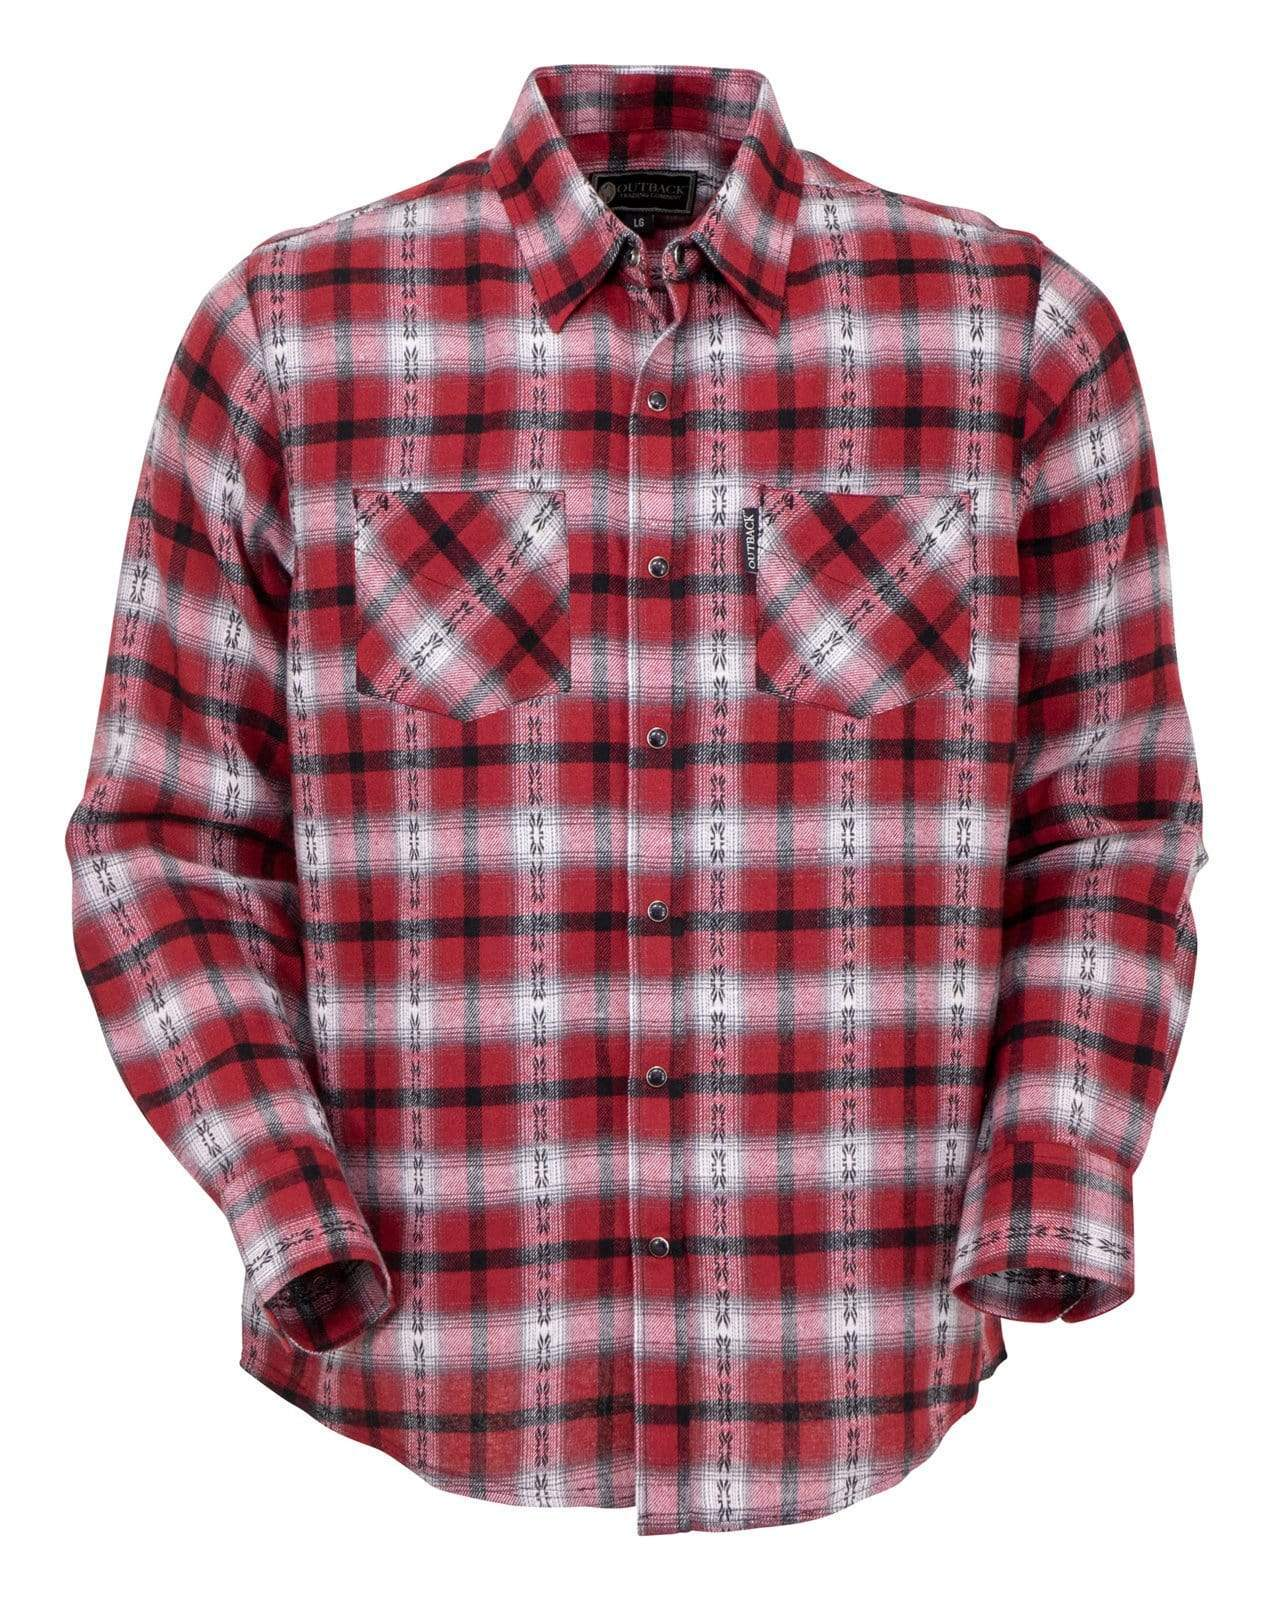 Men's Outback Trading Company Raynor Flannel Snap Front Shirt #42708-RED